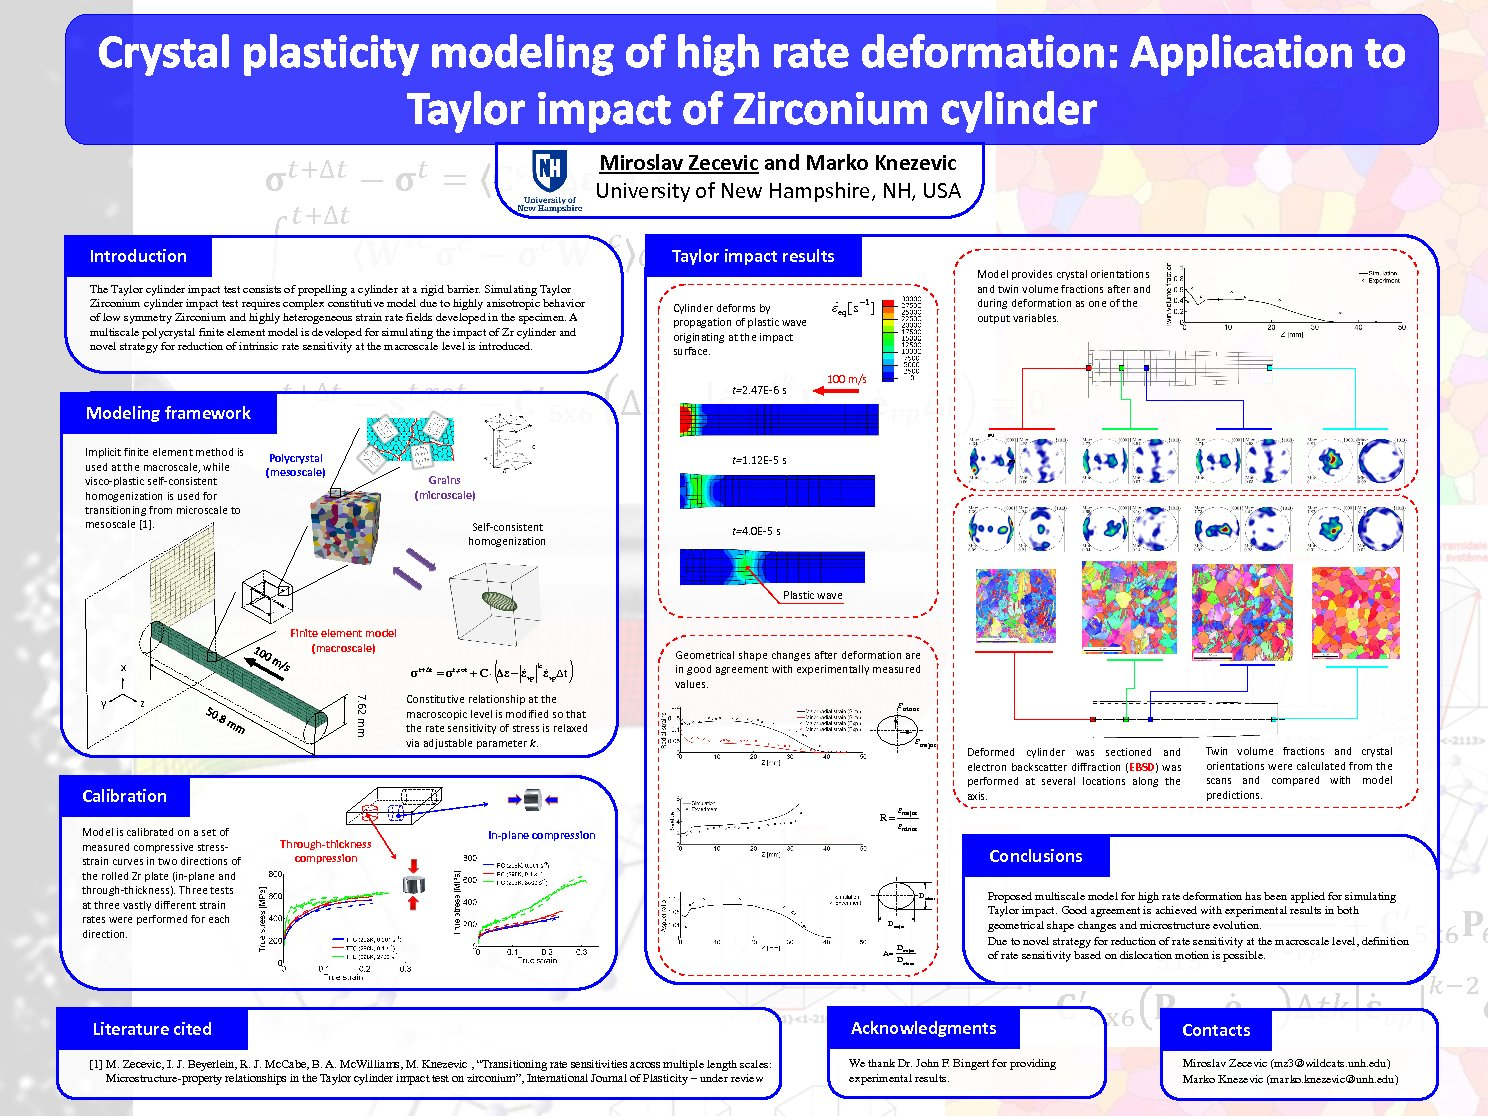 Crystal Plasticity Modeling Of High Rate Deformation: Application To Taylor Impact Of Zirconium Cylinder by mz3